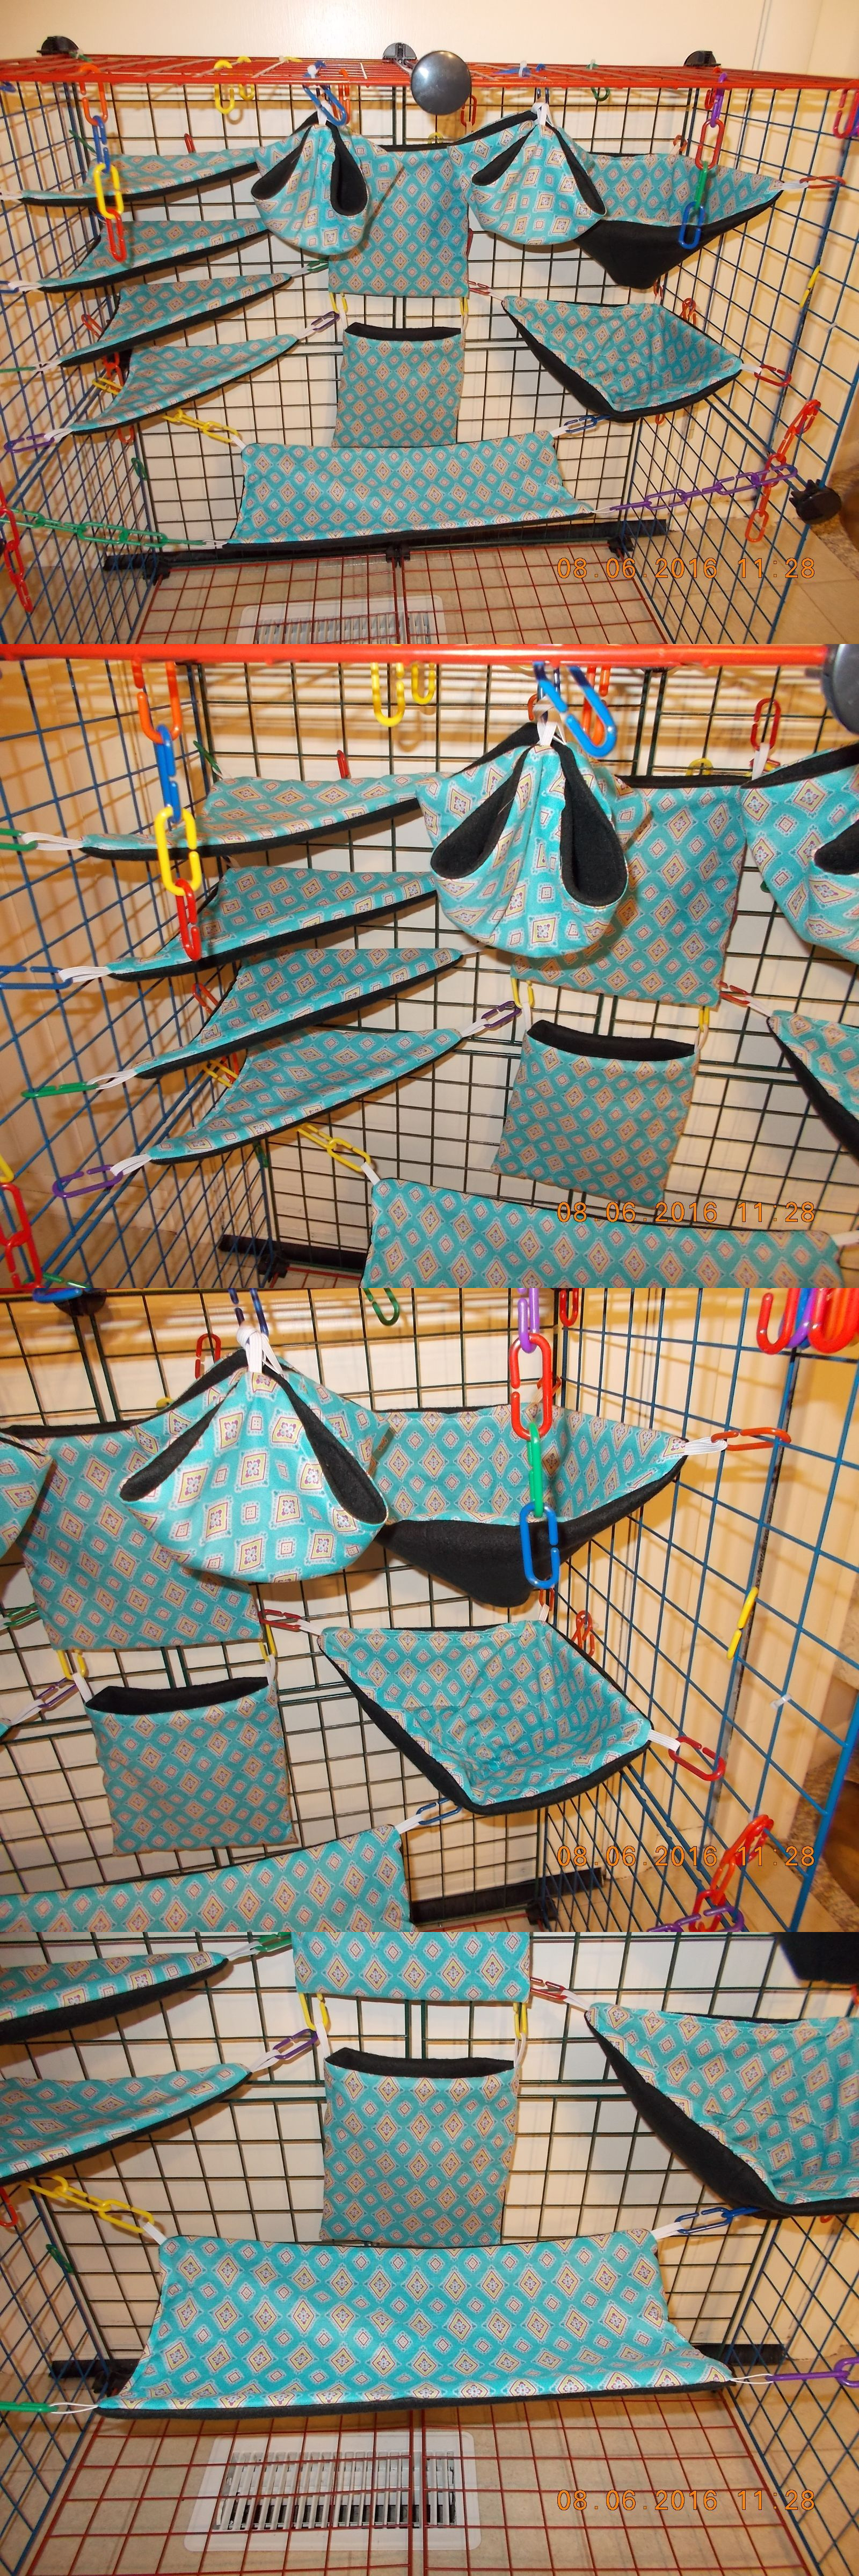 Bedding 149078: Blue Diamond Shapes Sugar Glider 11 Pc Cage Set -> BUY IT NOW ONLY: $39.95 on eBay!